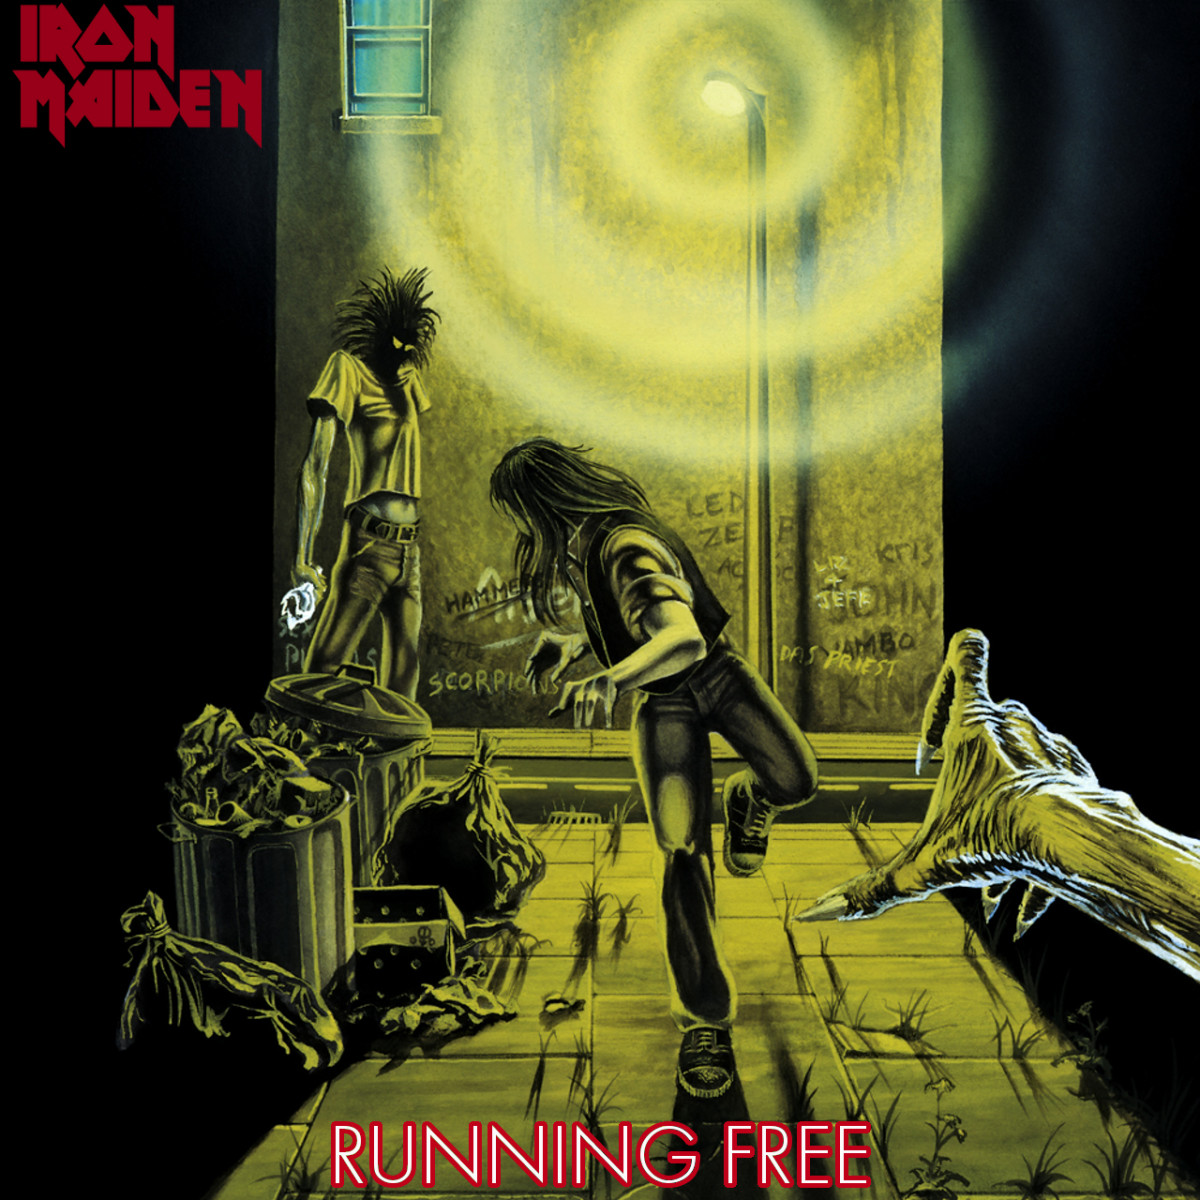 "Iron Maiden ""Running Free"" EMI 5032 7"" Vinyl Single UK Pressing (1980) Picture Sleeve Art by Derek Riggs"